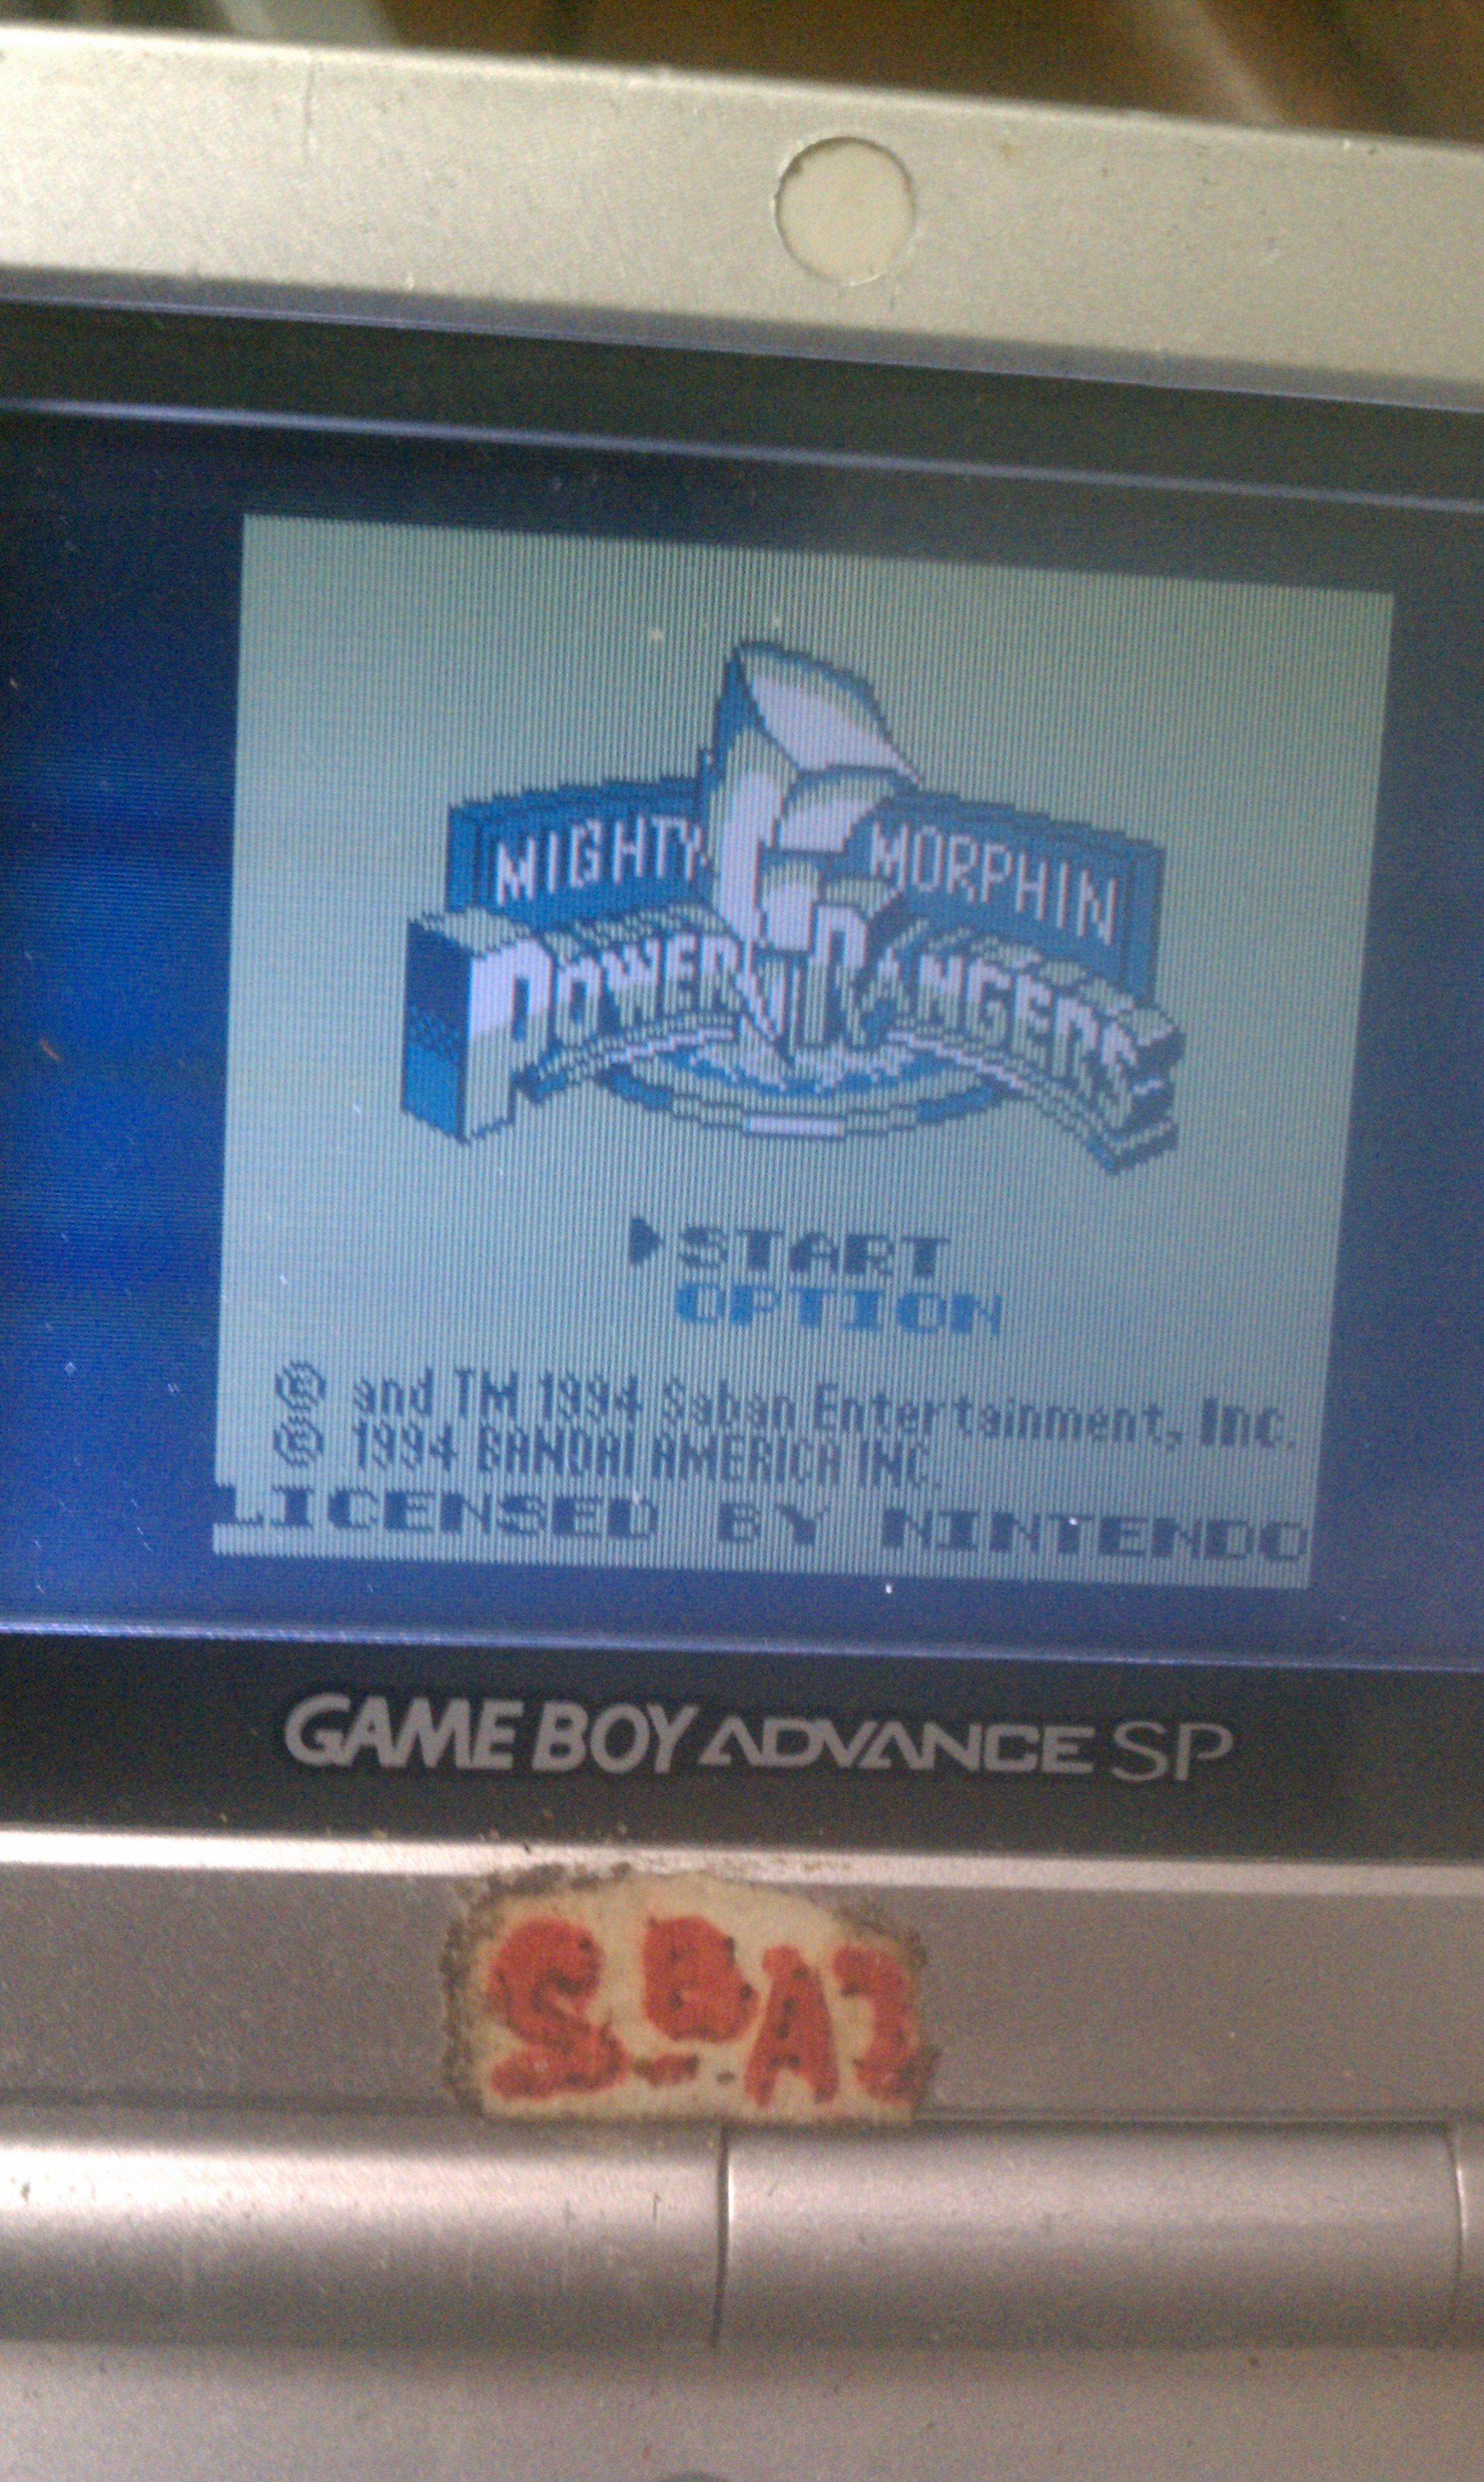 BAZ: Mighty Morphin Power Rangers [Normal] (Game Boy) 2,450 points on 2020-01-18 14:42:57